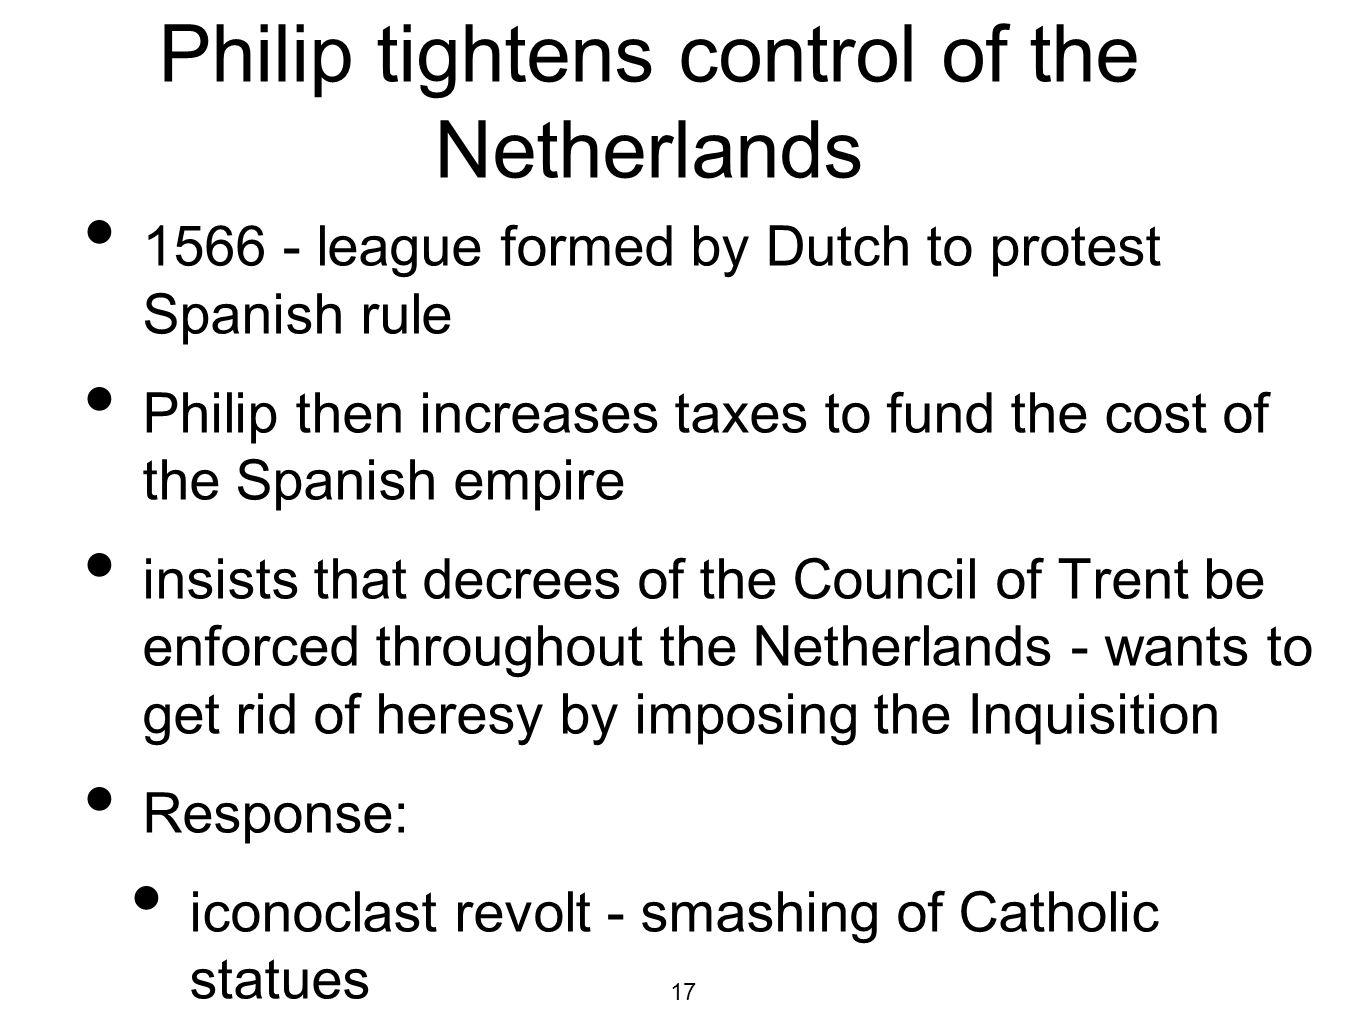 Philip tightens control of the Netherlands